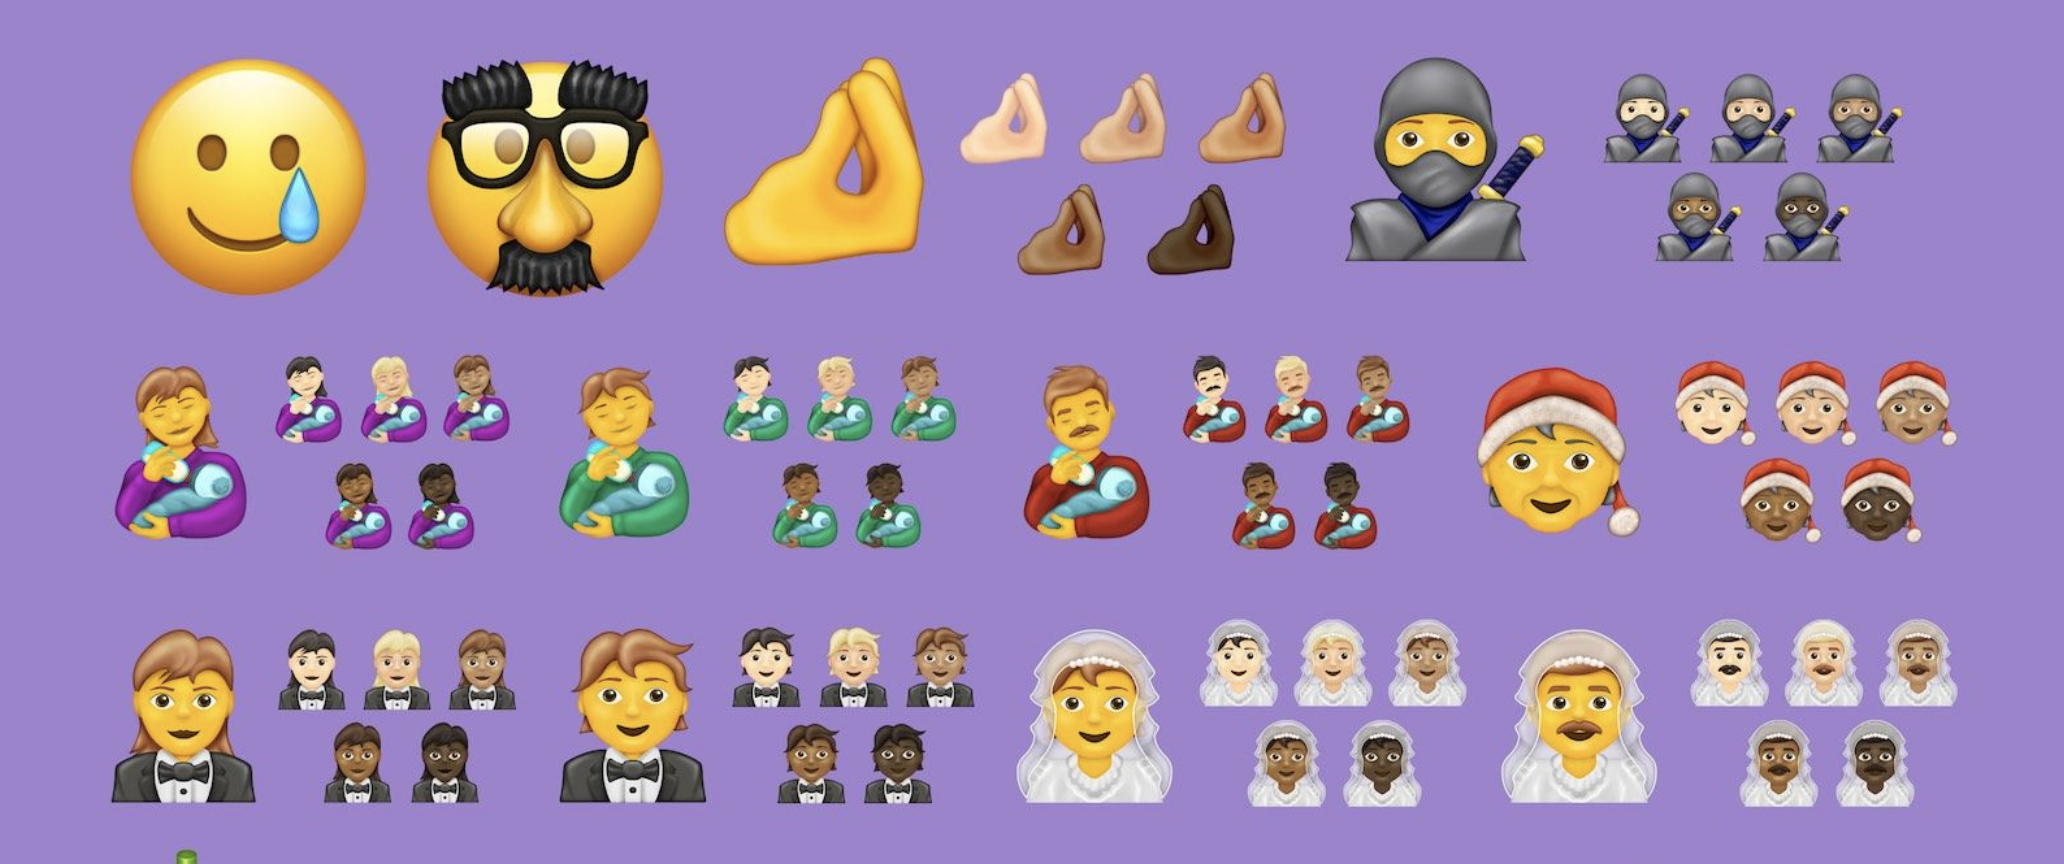 Breaking Down the 117 New Emojis Coming To iPhone In 2020